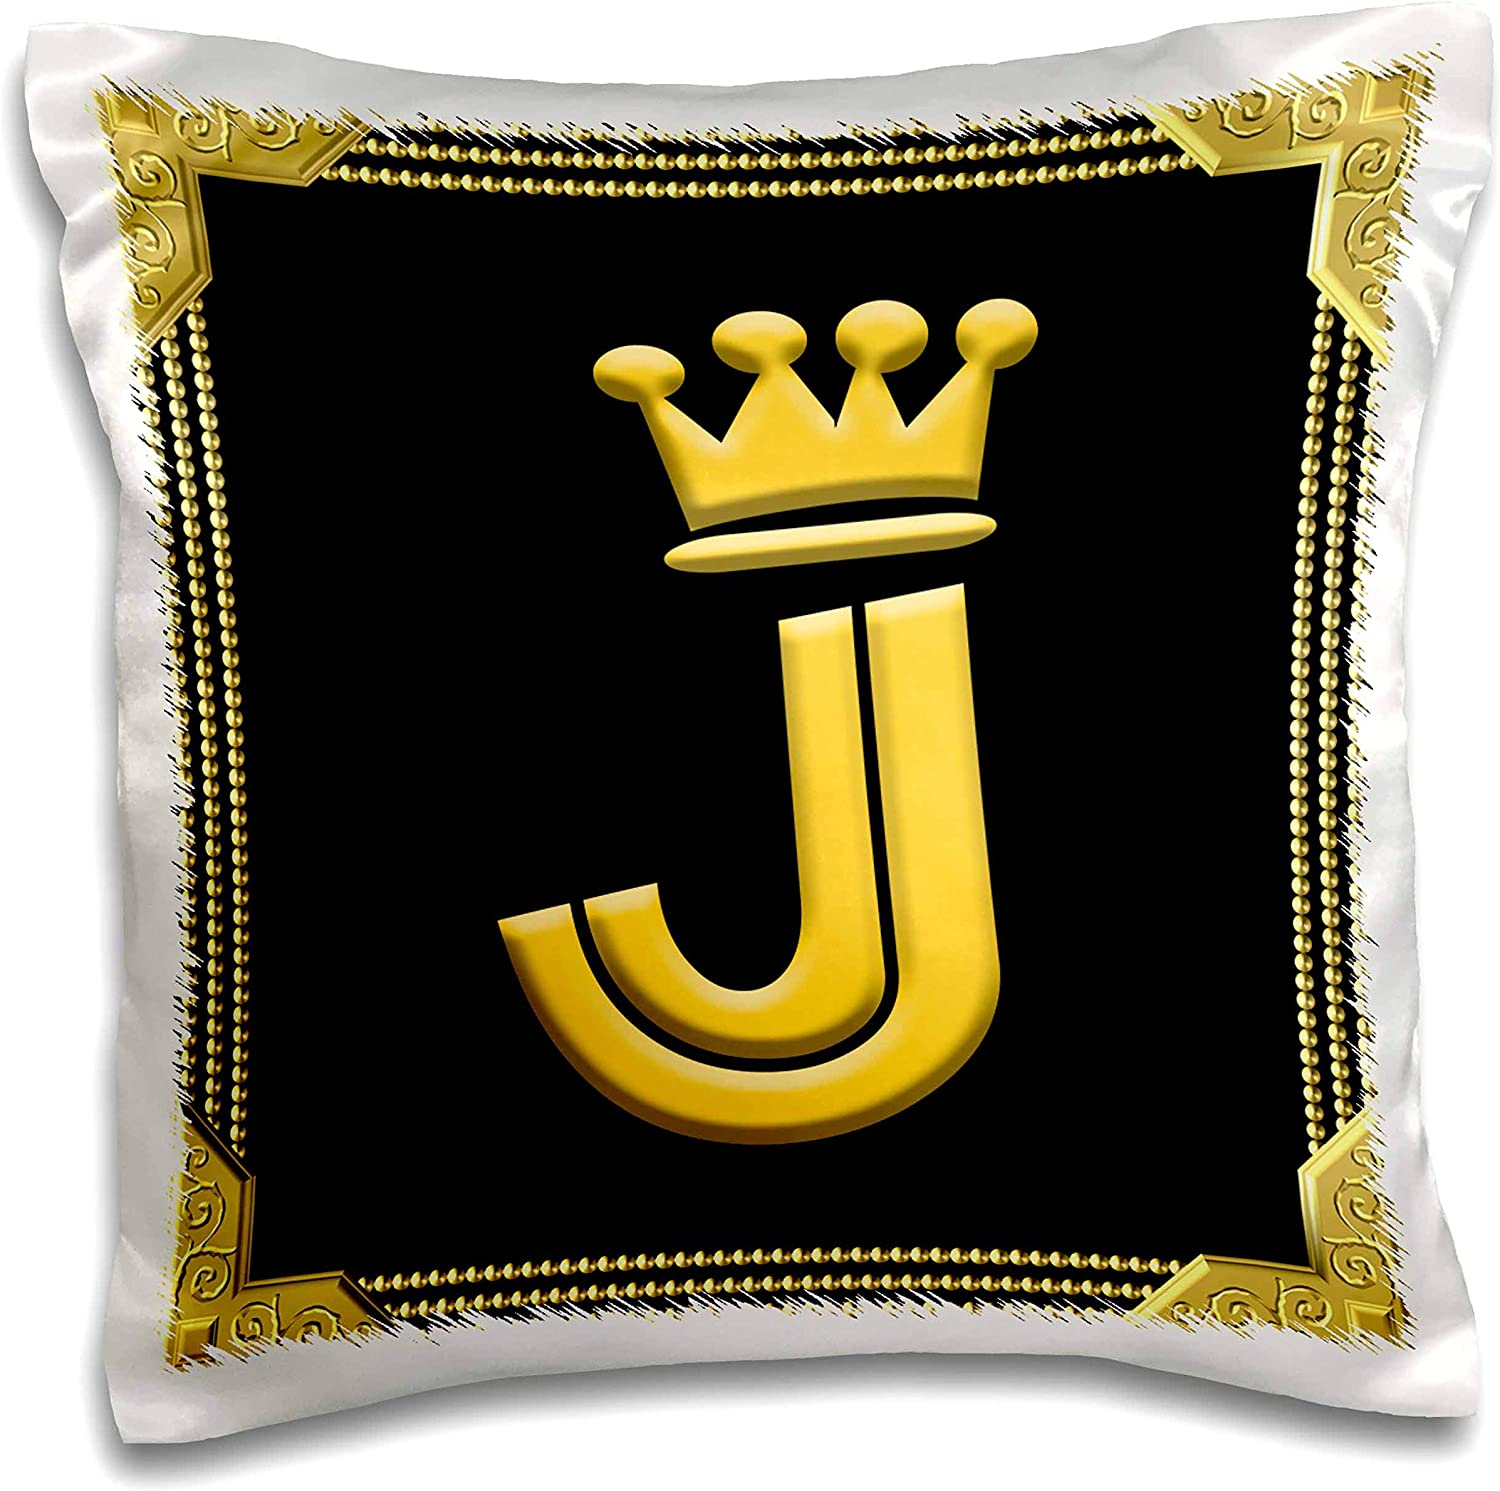 3drose Alexis Design Monogram King Queen King Queen Crown Rich Frame Yellow On Black Dazzling Letter J 16x16 Inch Pillow Case Pc 325326 1 Kitchen Dining